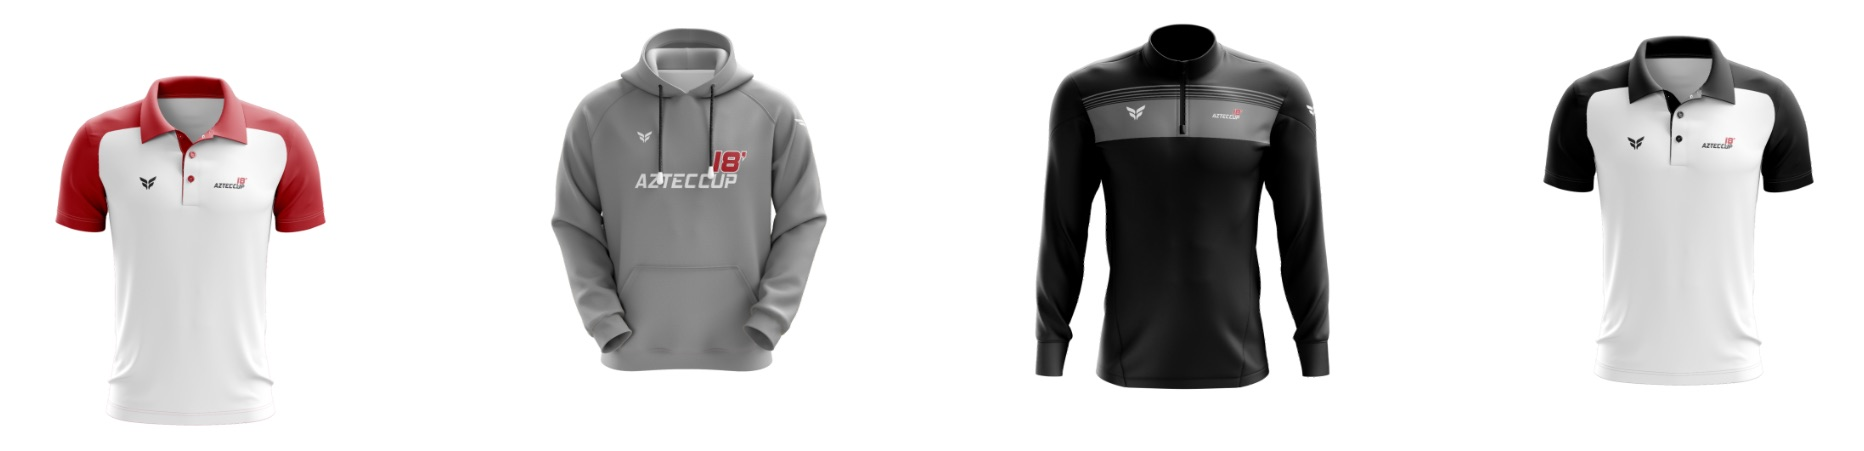 2018 Aztec Shirts, Polo, Hoodies, and Jackets